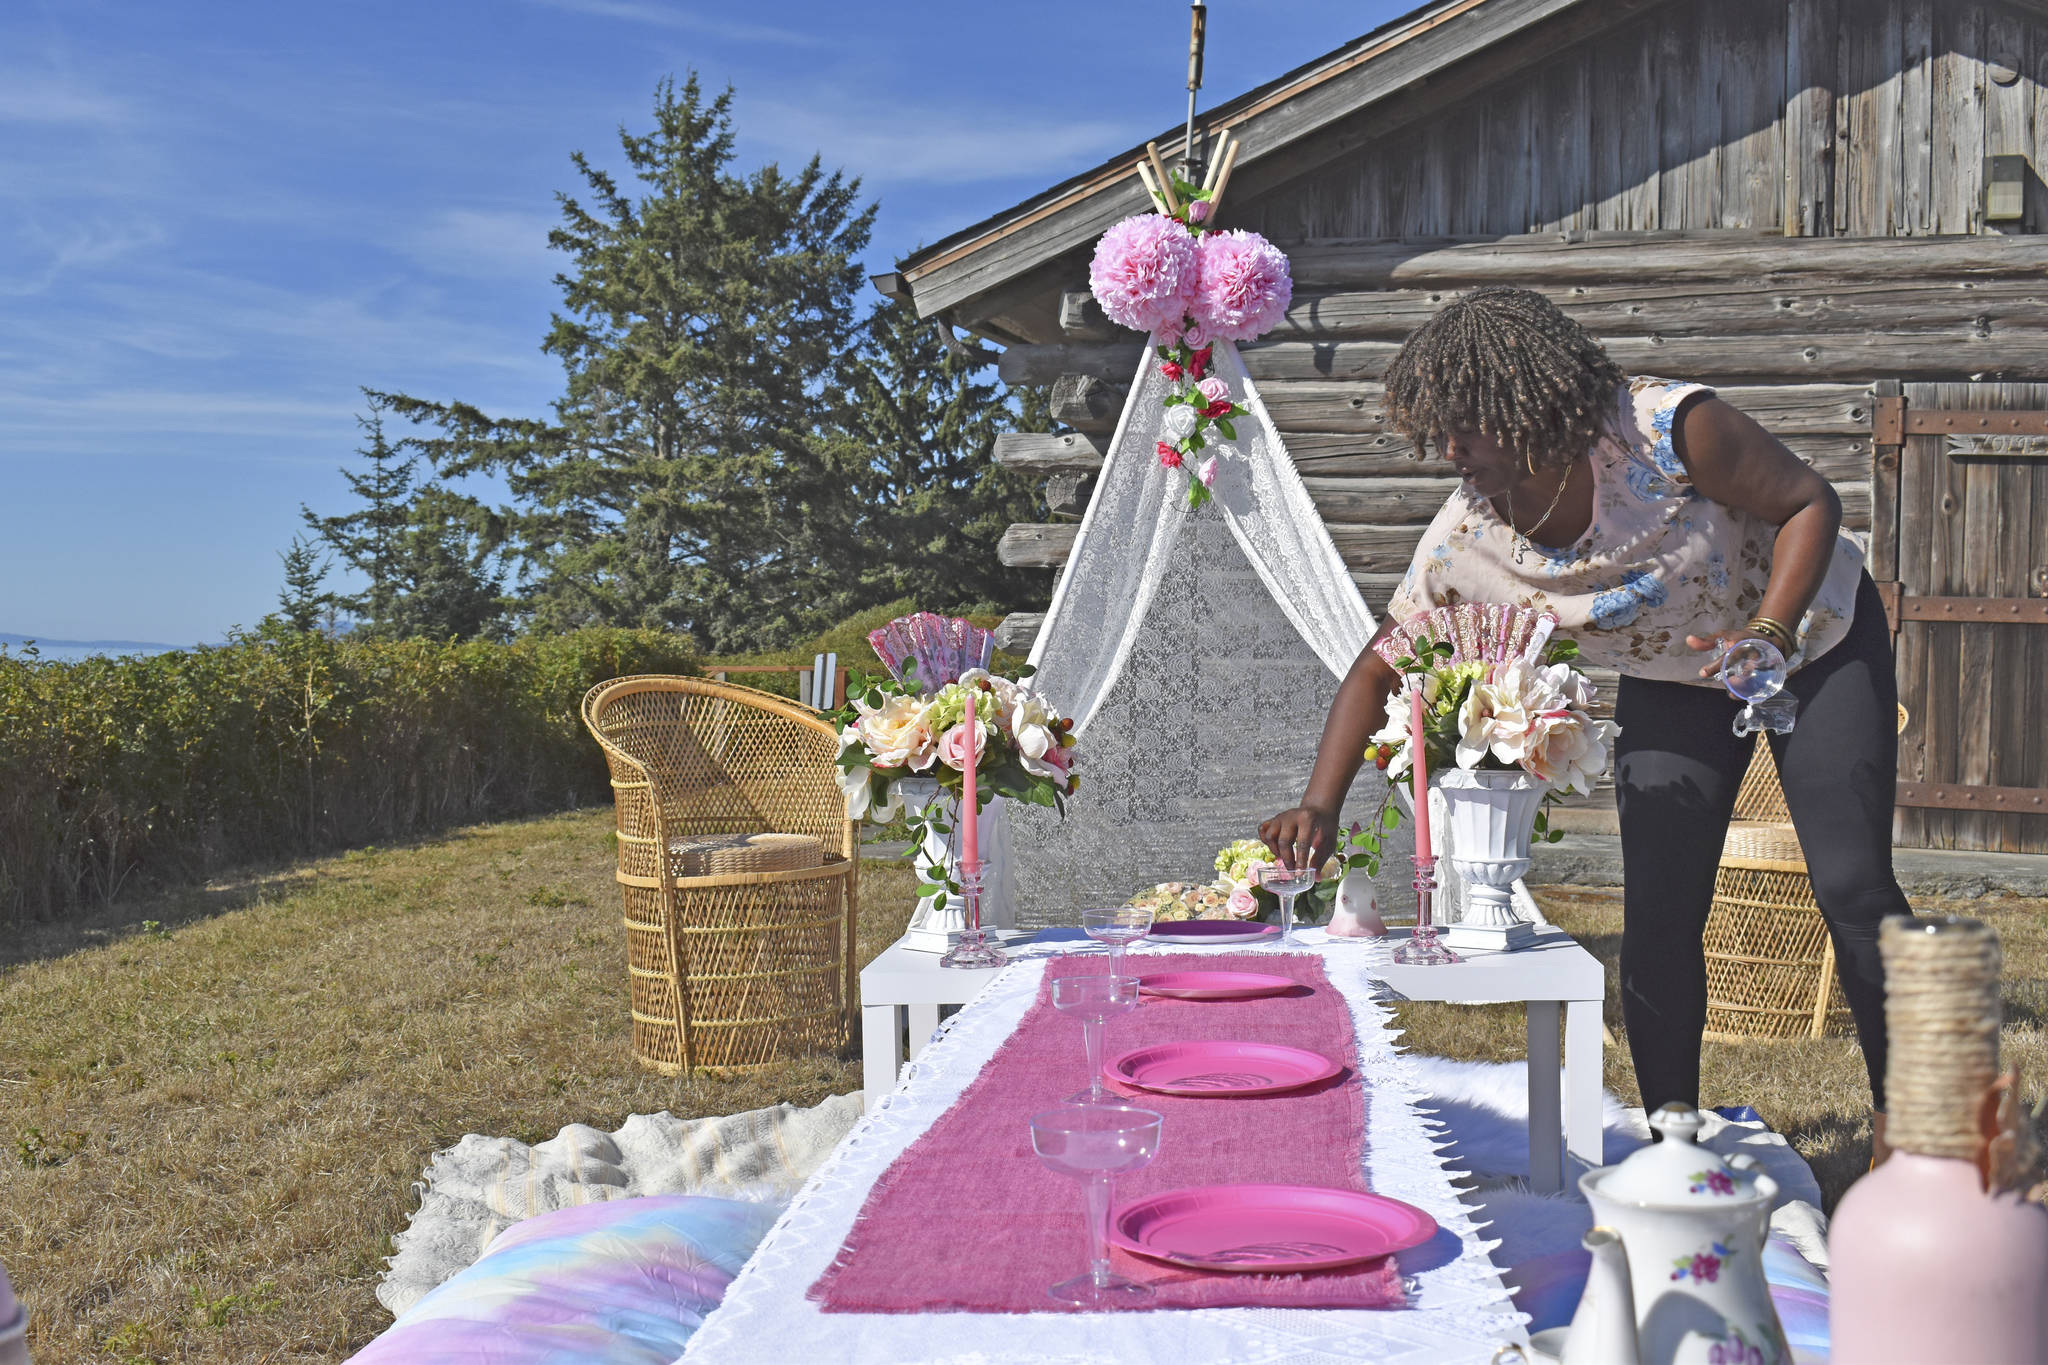 Photo by Emily Gilbert/Whidbey News-Times Cadesha Pacquette sets up a pop-up picnic spread similar to one she created for a young girl's birthday party. Pacquette said her new venture has been popular with military families celebrating a spouse's return from deployment, anniversaries or just to have fun outdoors.